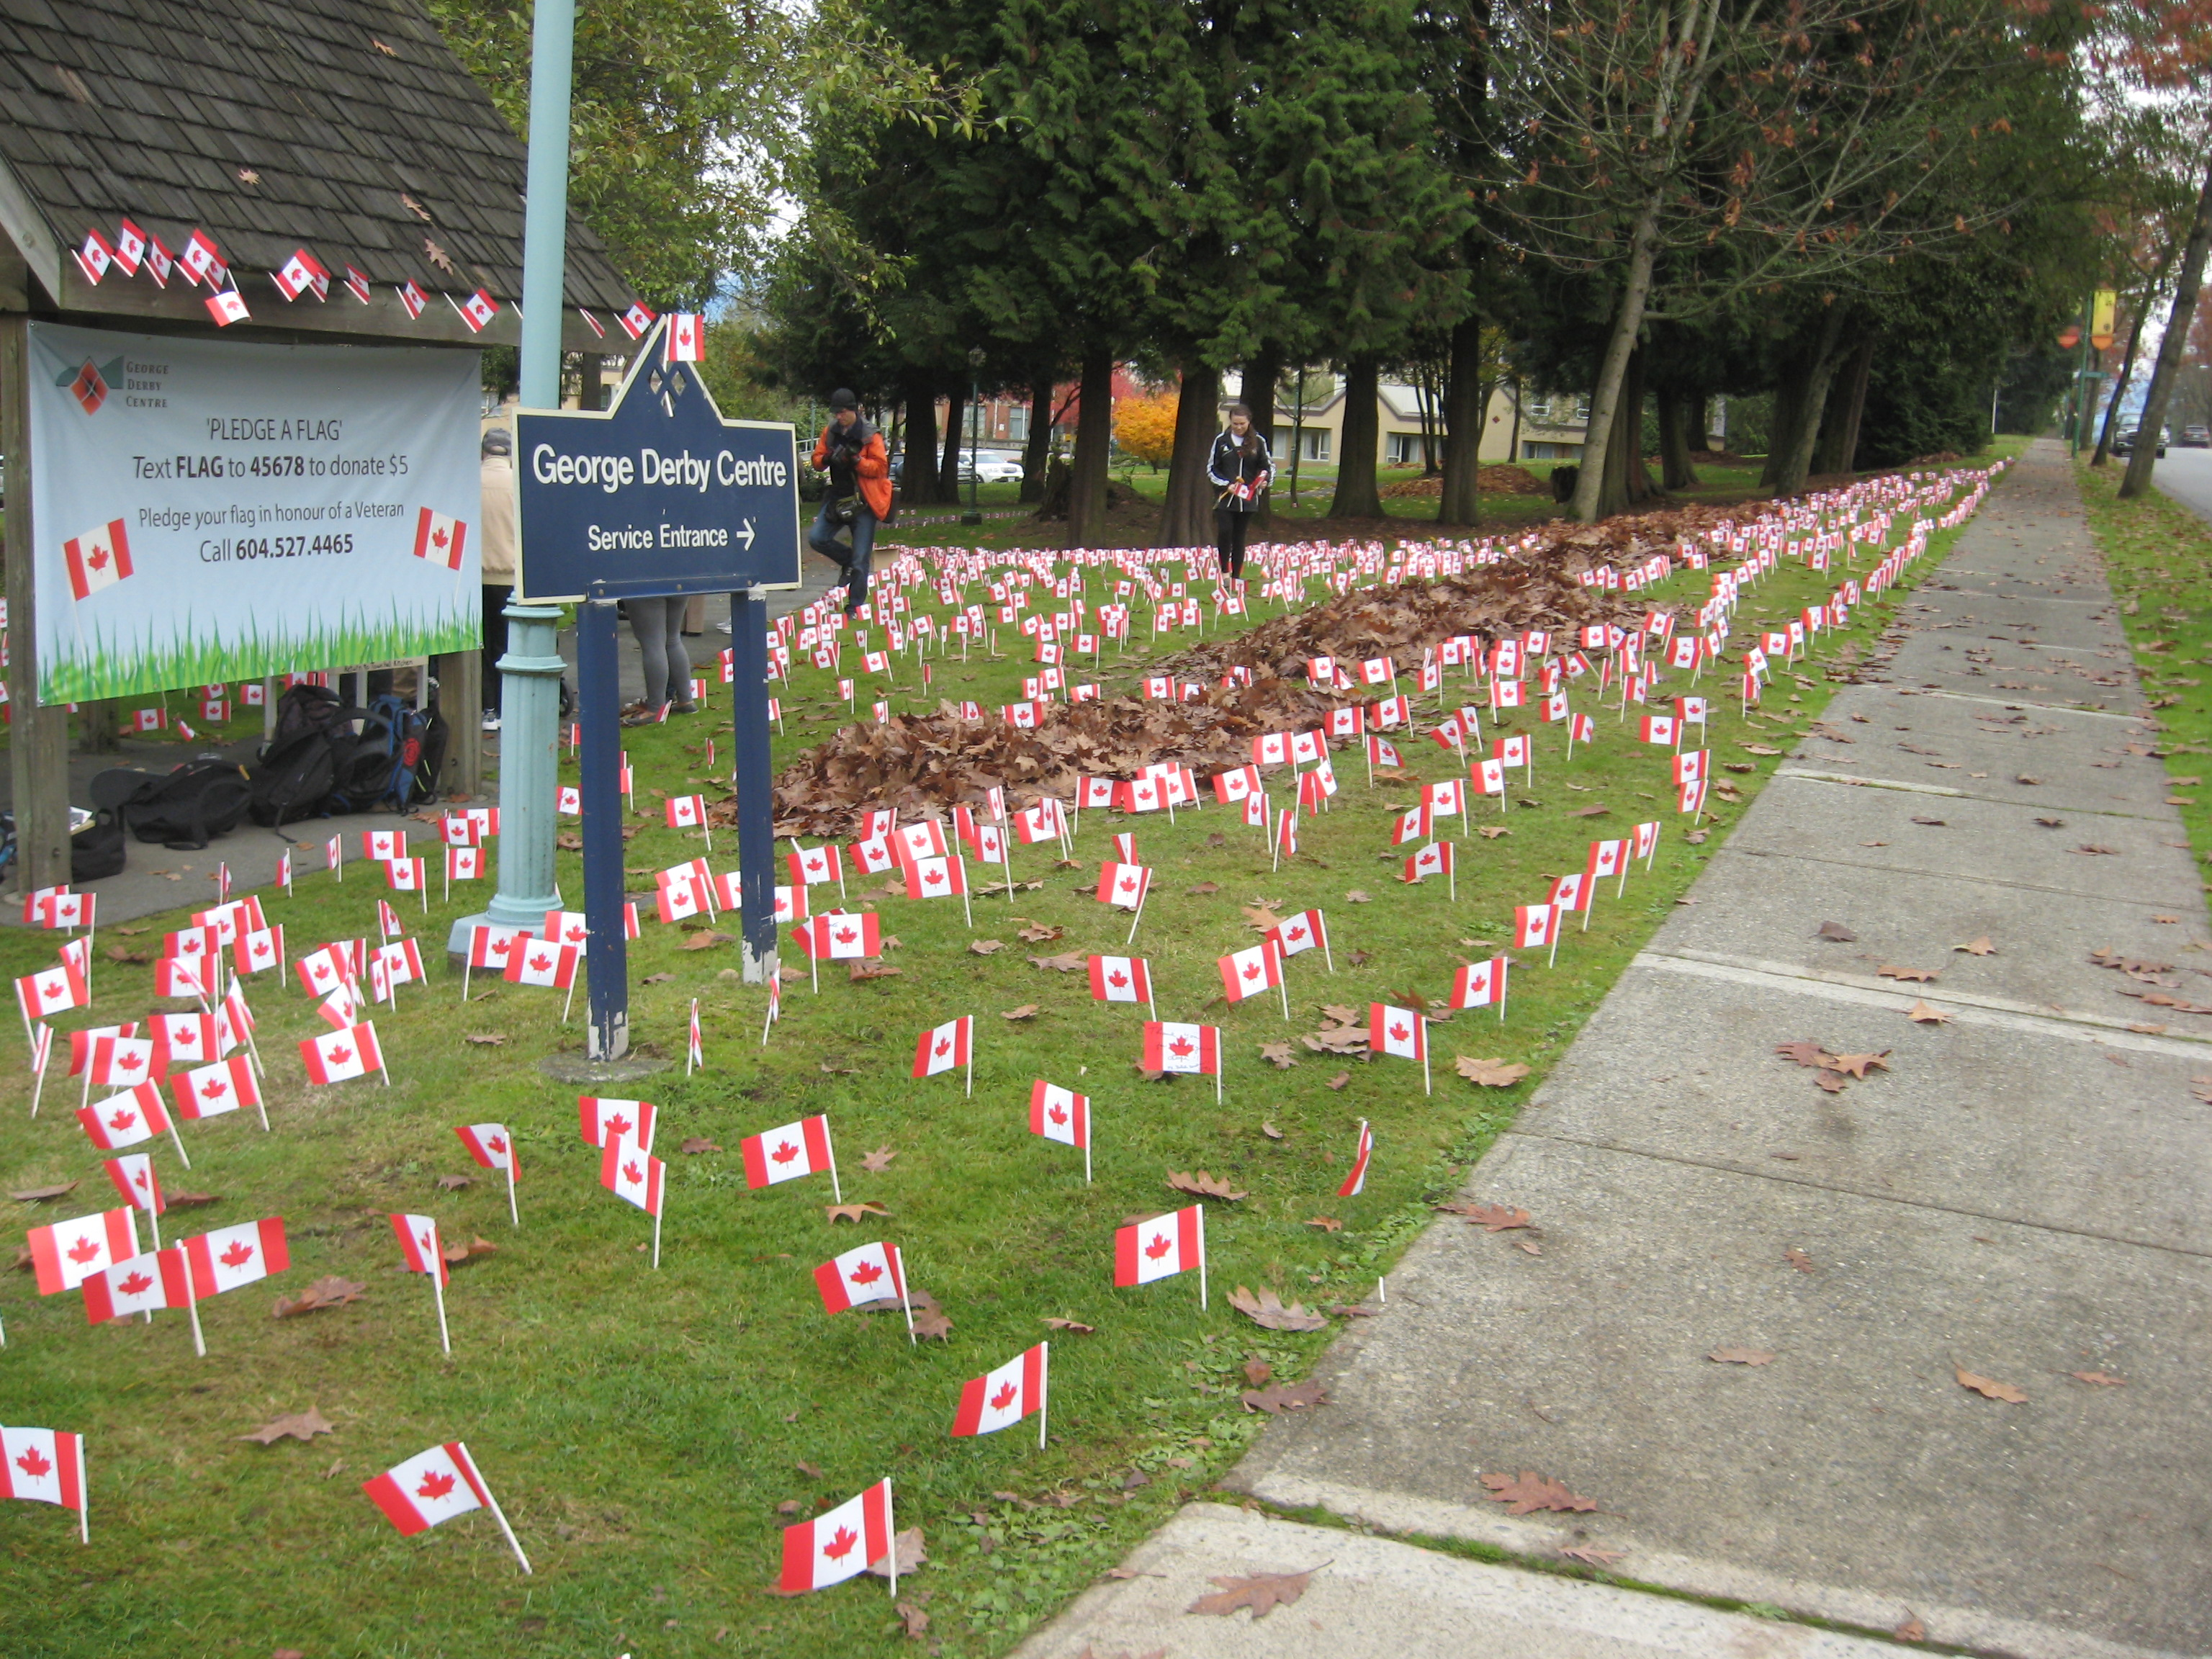 George Derby Centre Canadian flags - Made by The Flag Shop